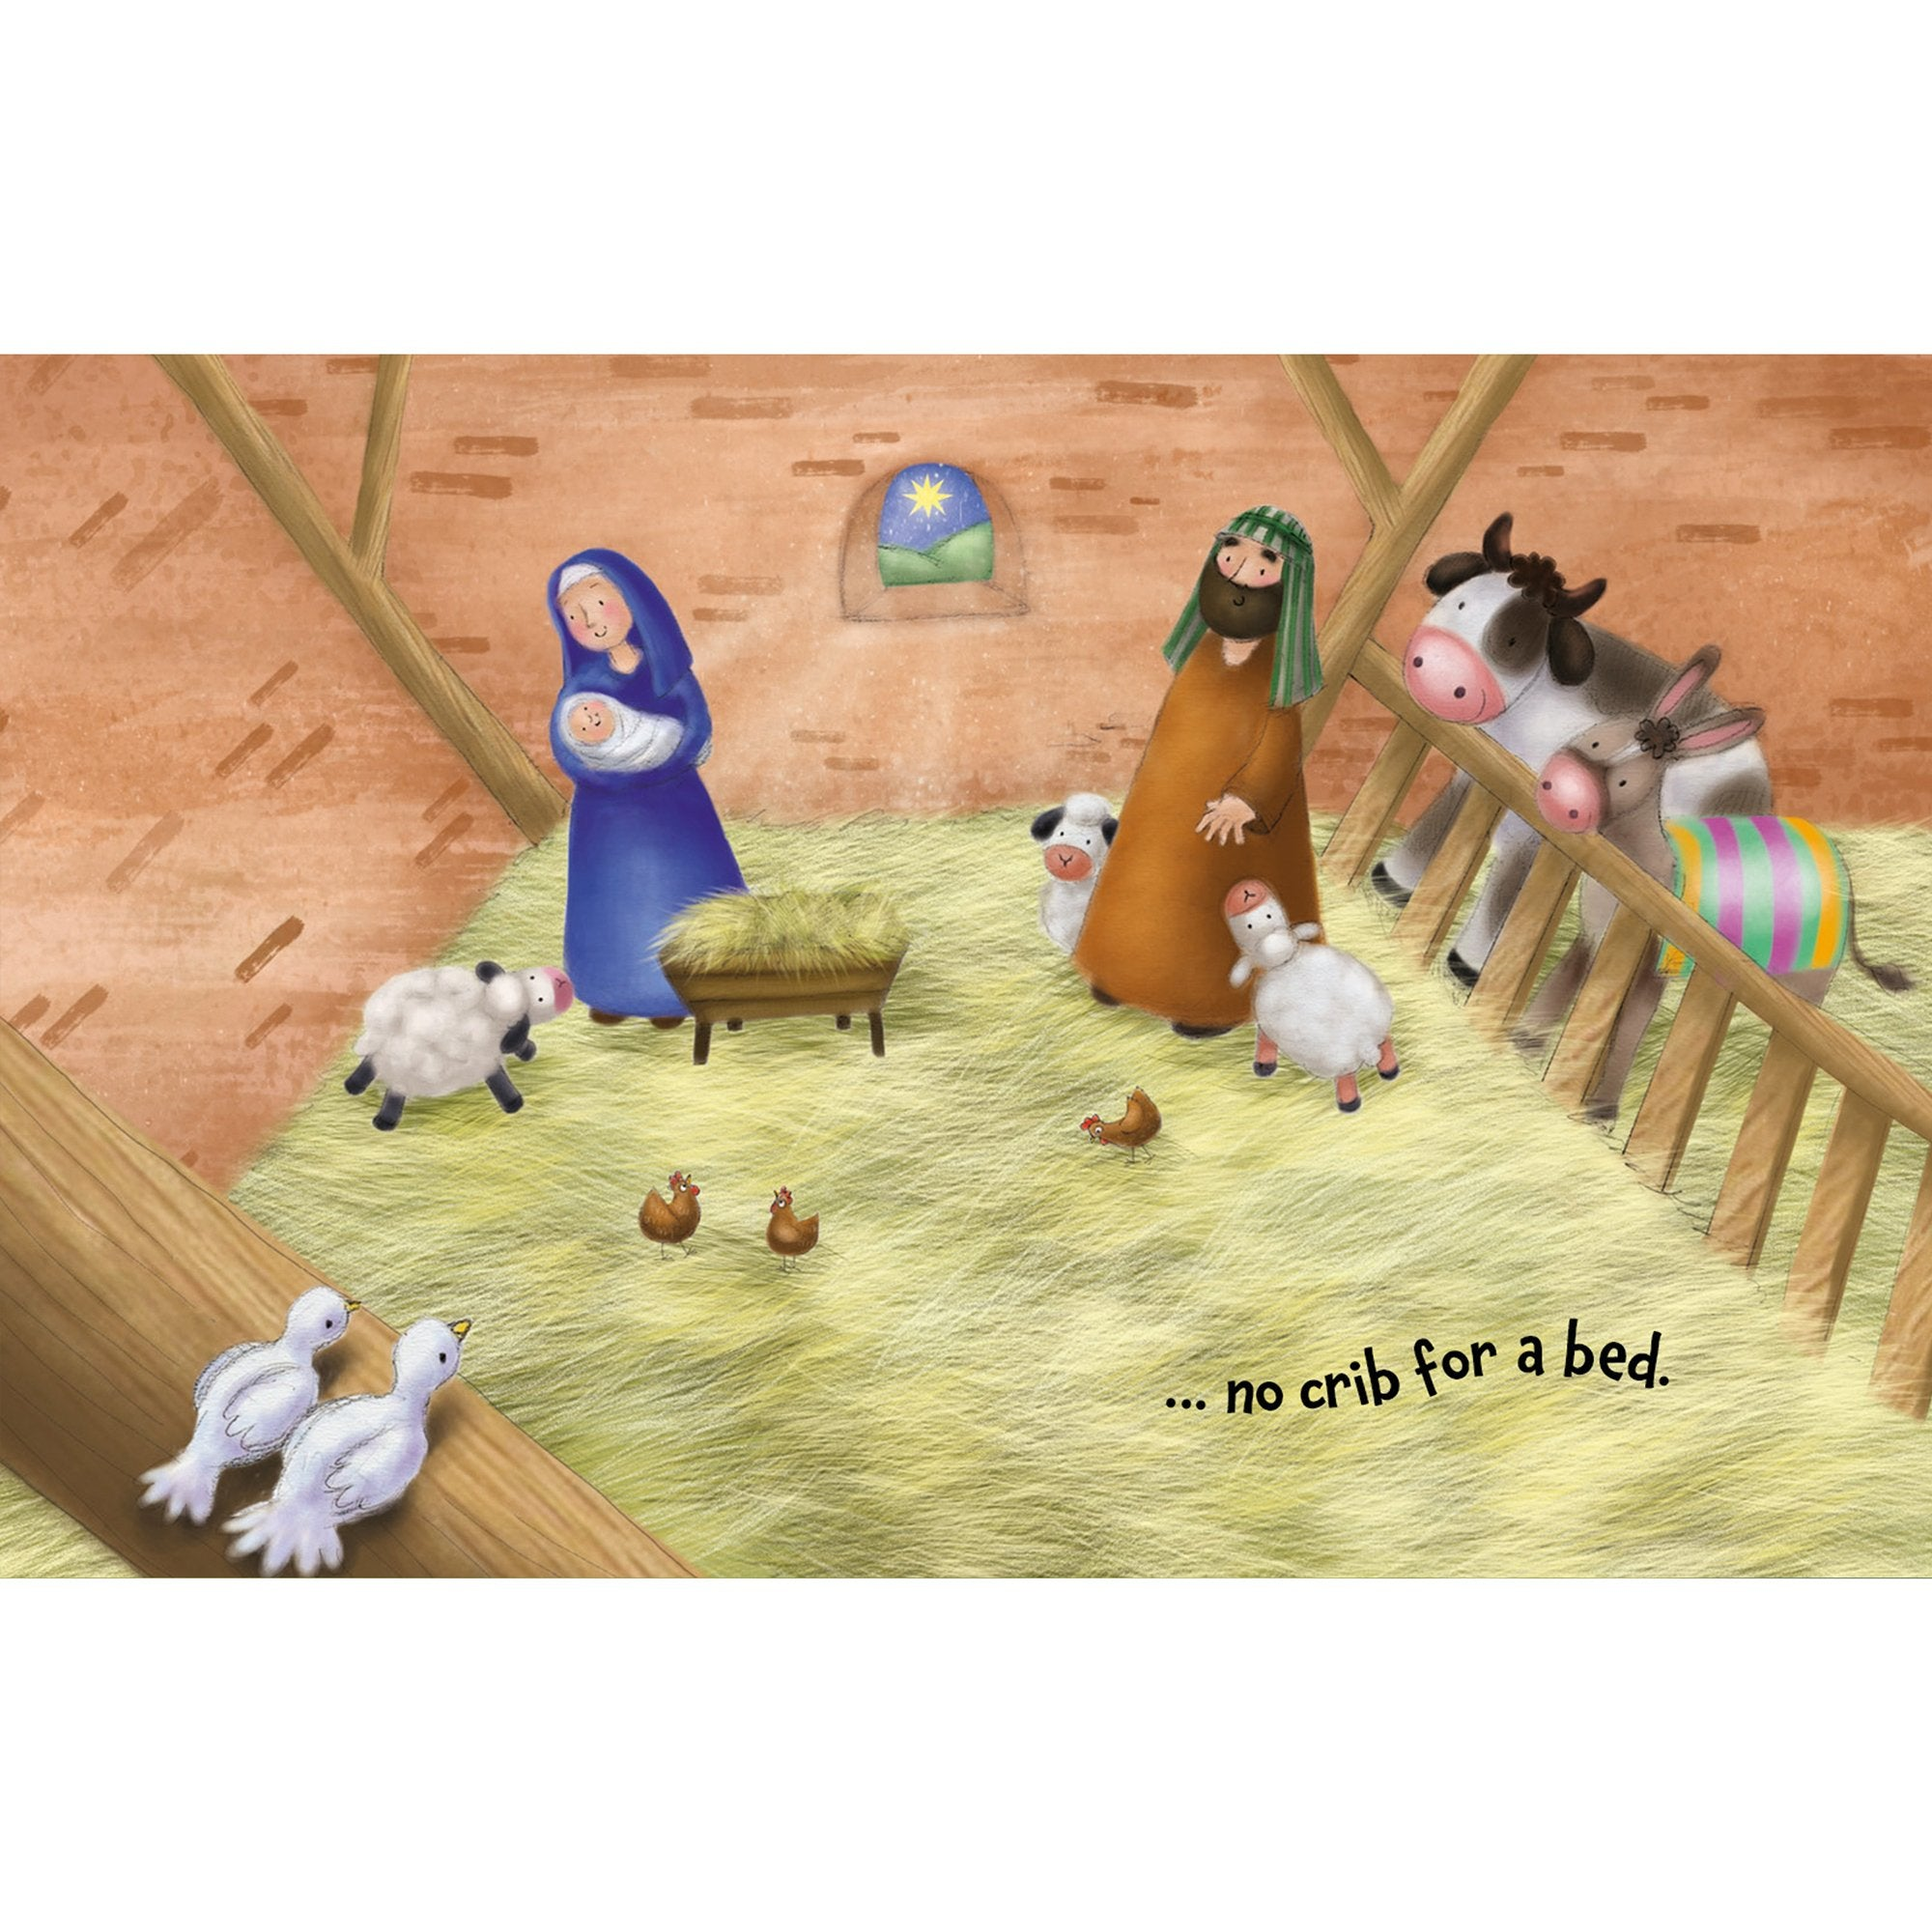 Christmas Giftbook - Away In A Manger - Half Moon Bay US